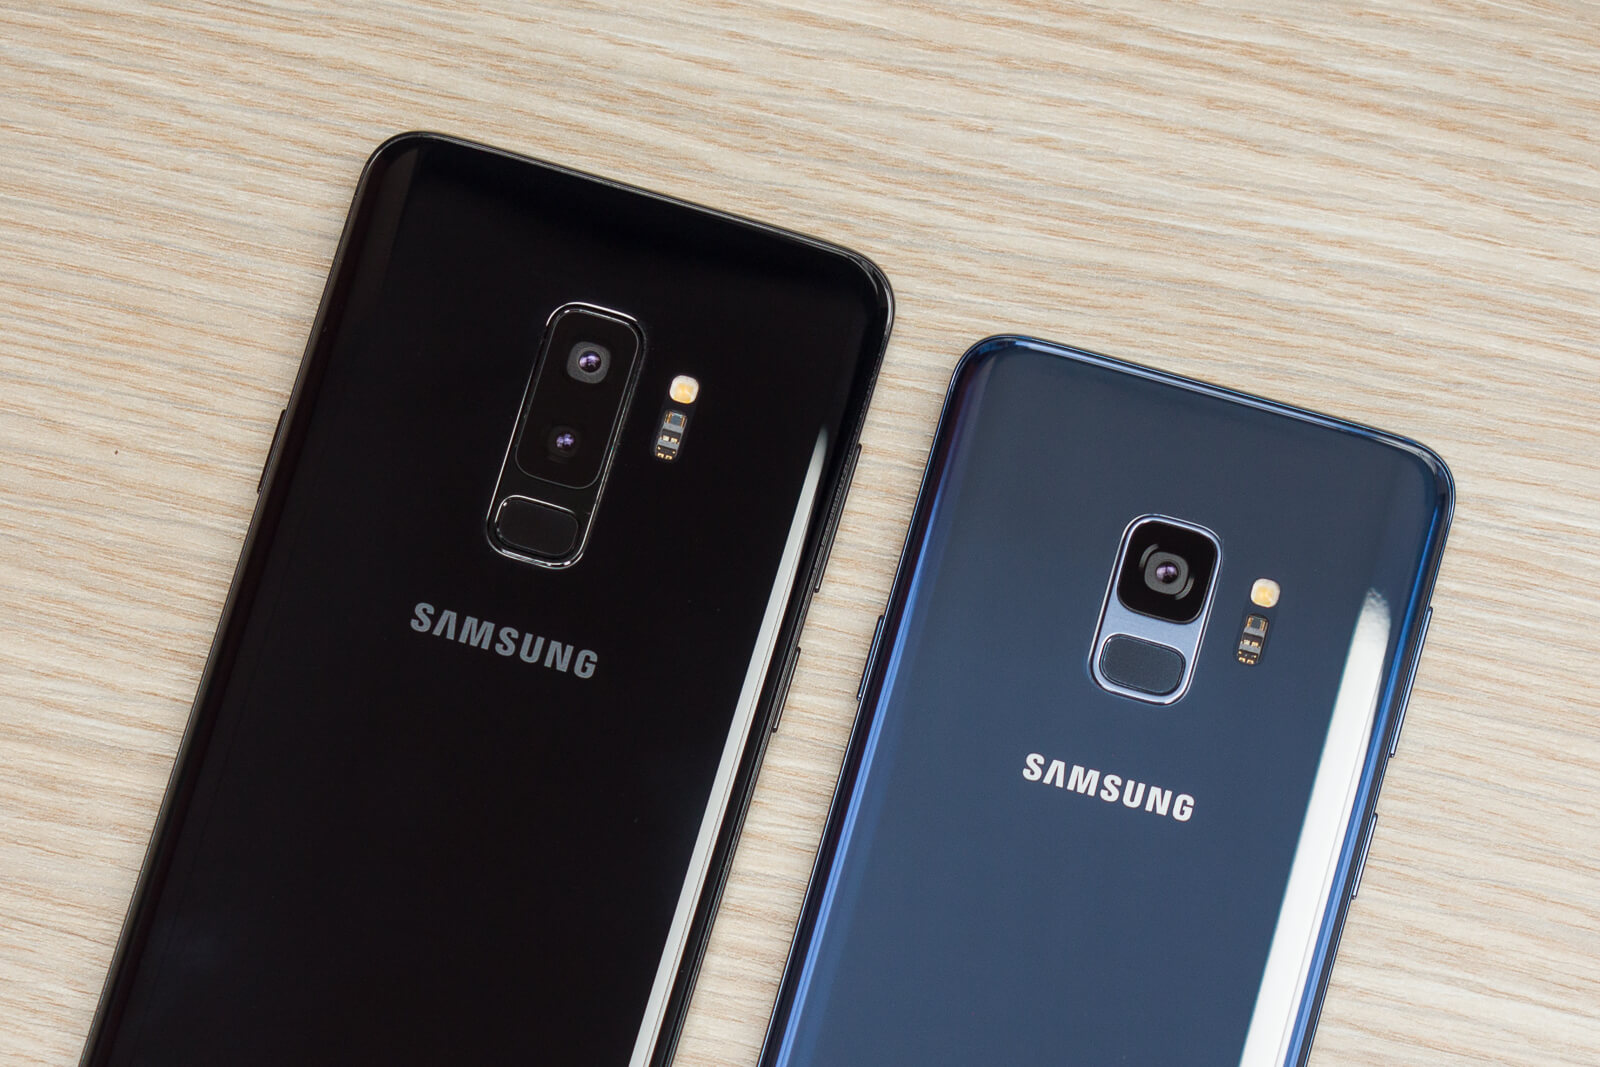 Samsung insiders say a dedicated gaming phone is in the works